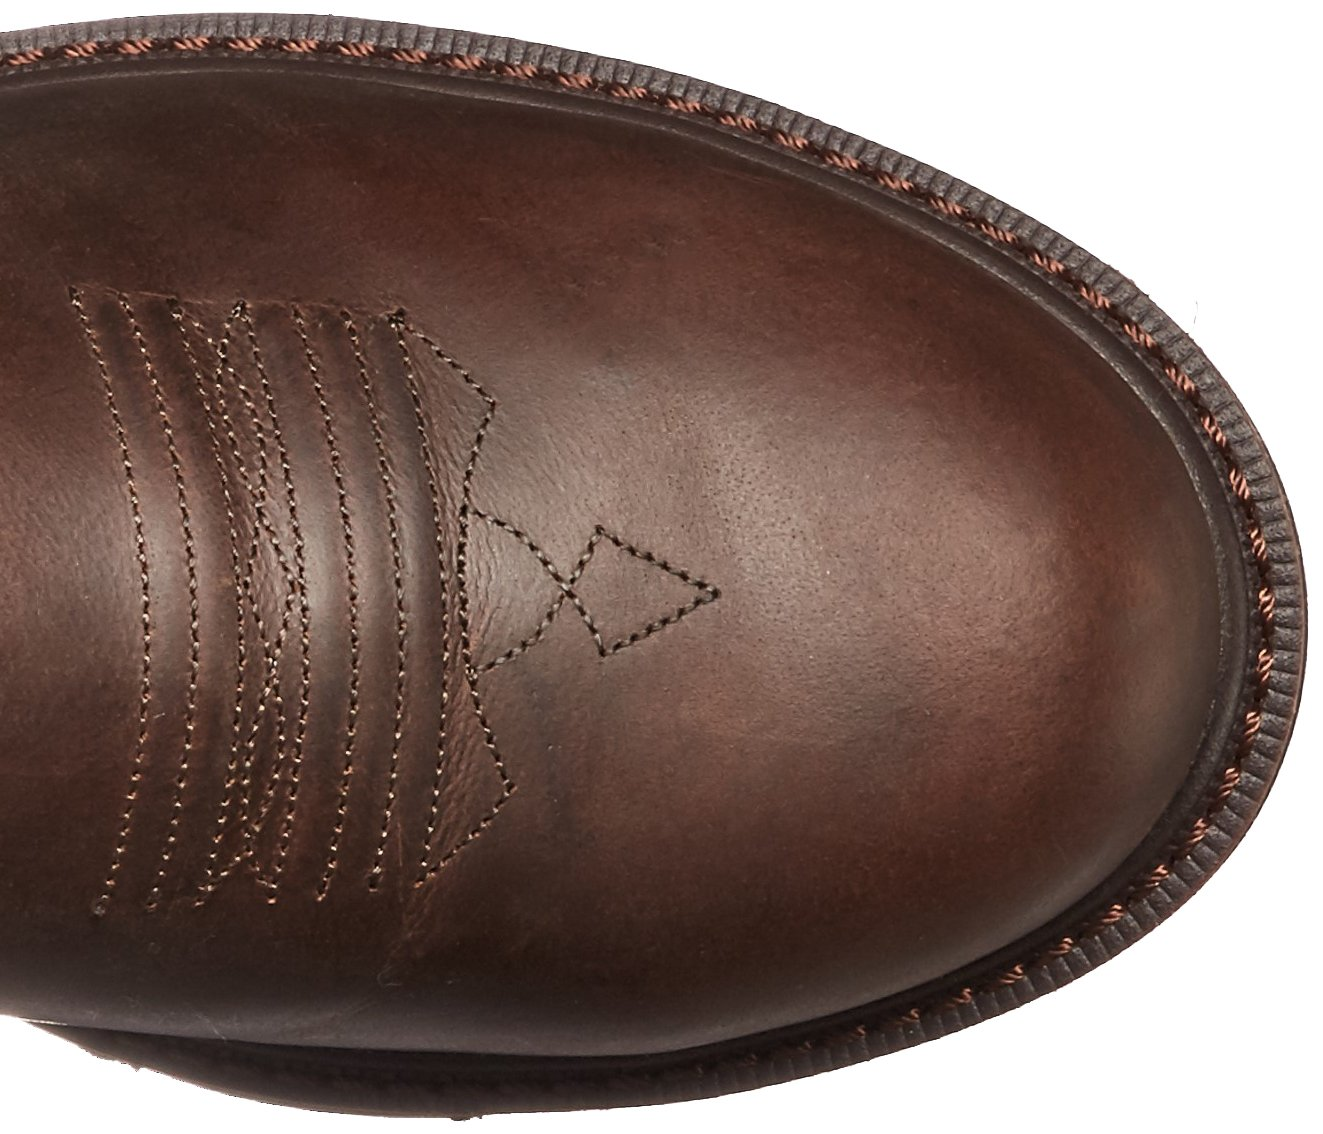 Ariat Work Men's Groundbreaker Pull-On Steel Toe Work Boot, Brown/Real Tree Extra, 7 D US by Ariat (Image #8)